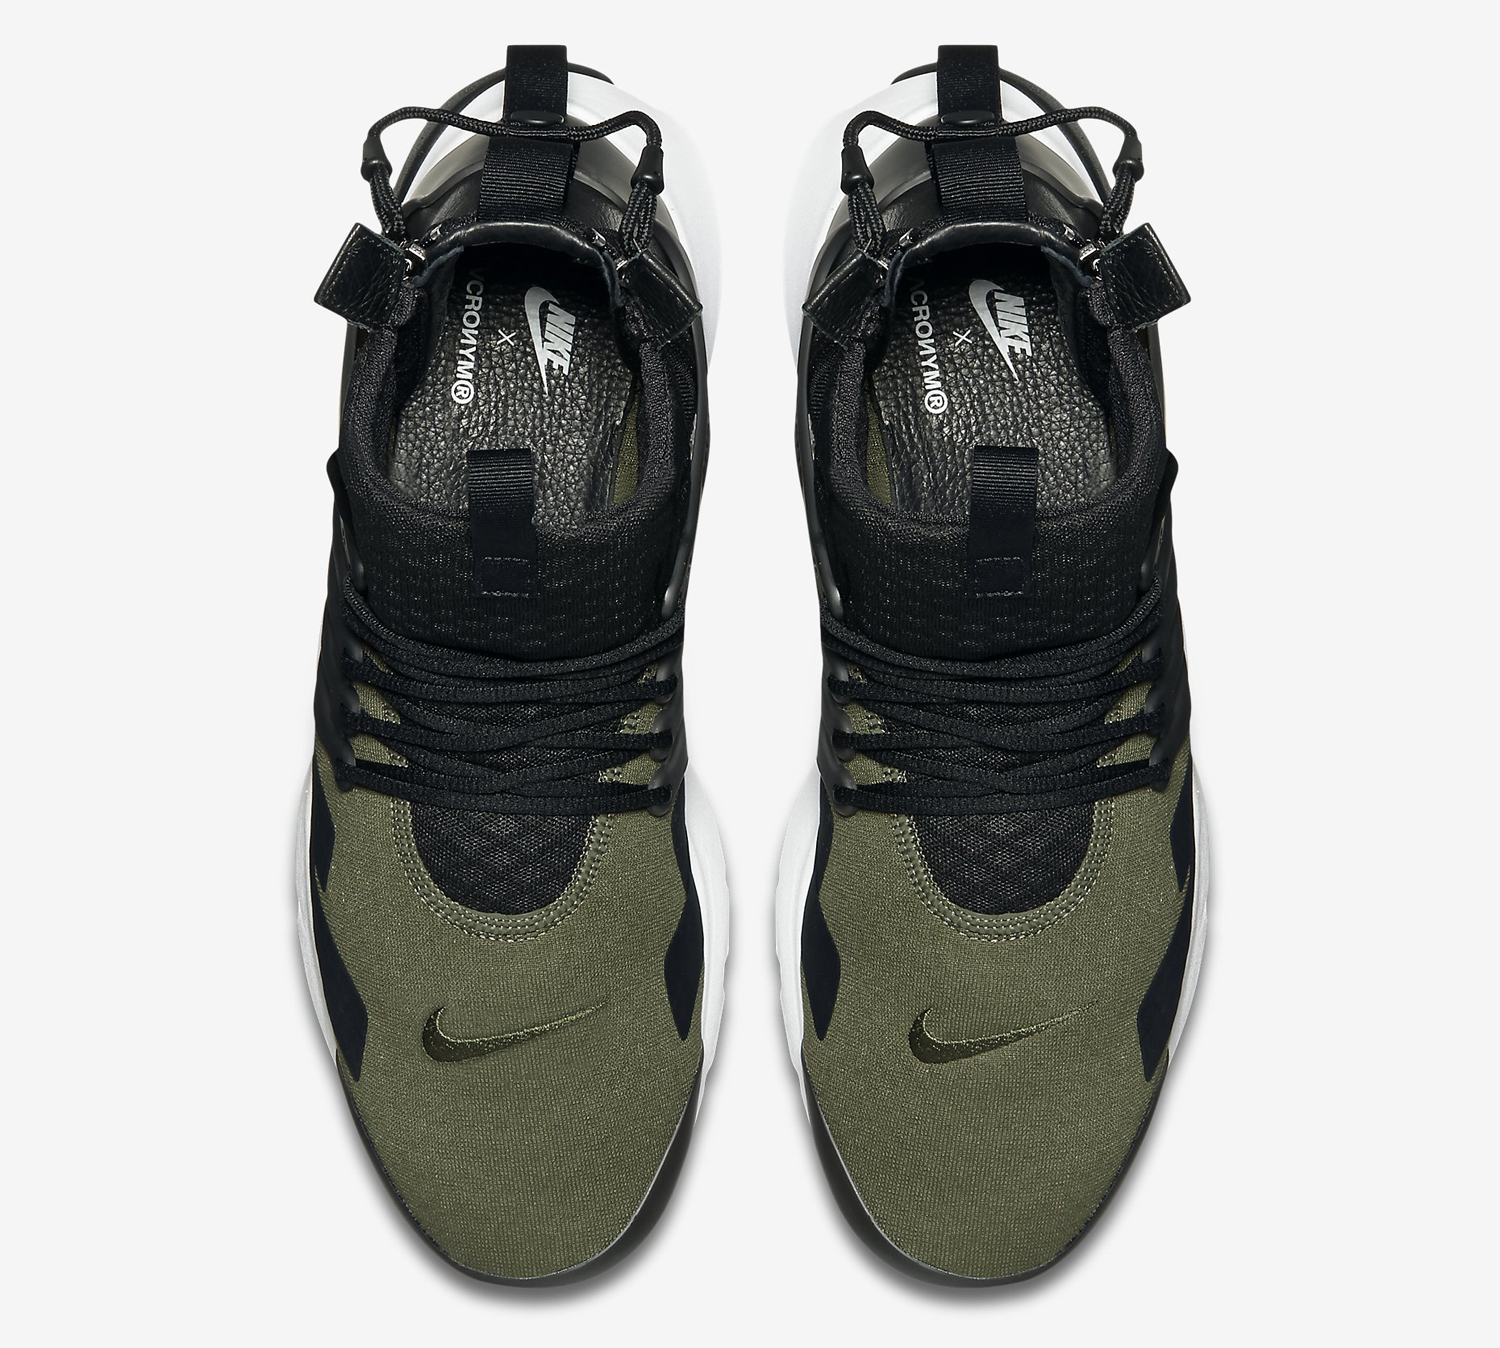 05161d44ec92 Acronym Nike Air Presto Mid 844672-200 Olive Black Top